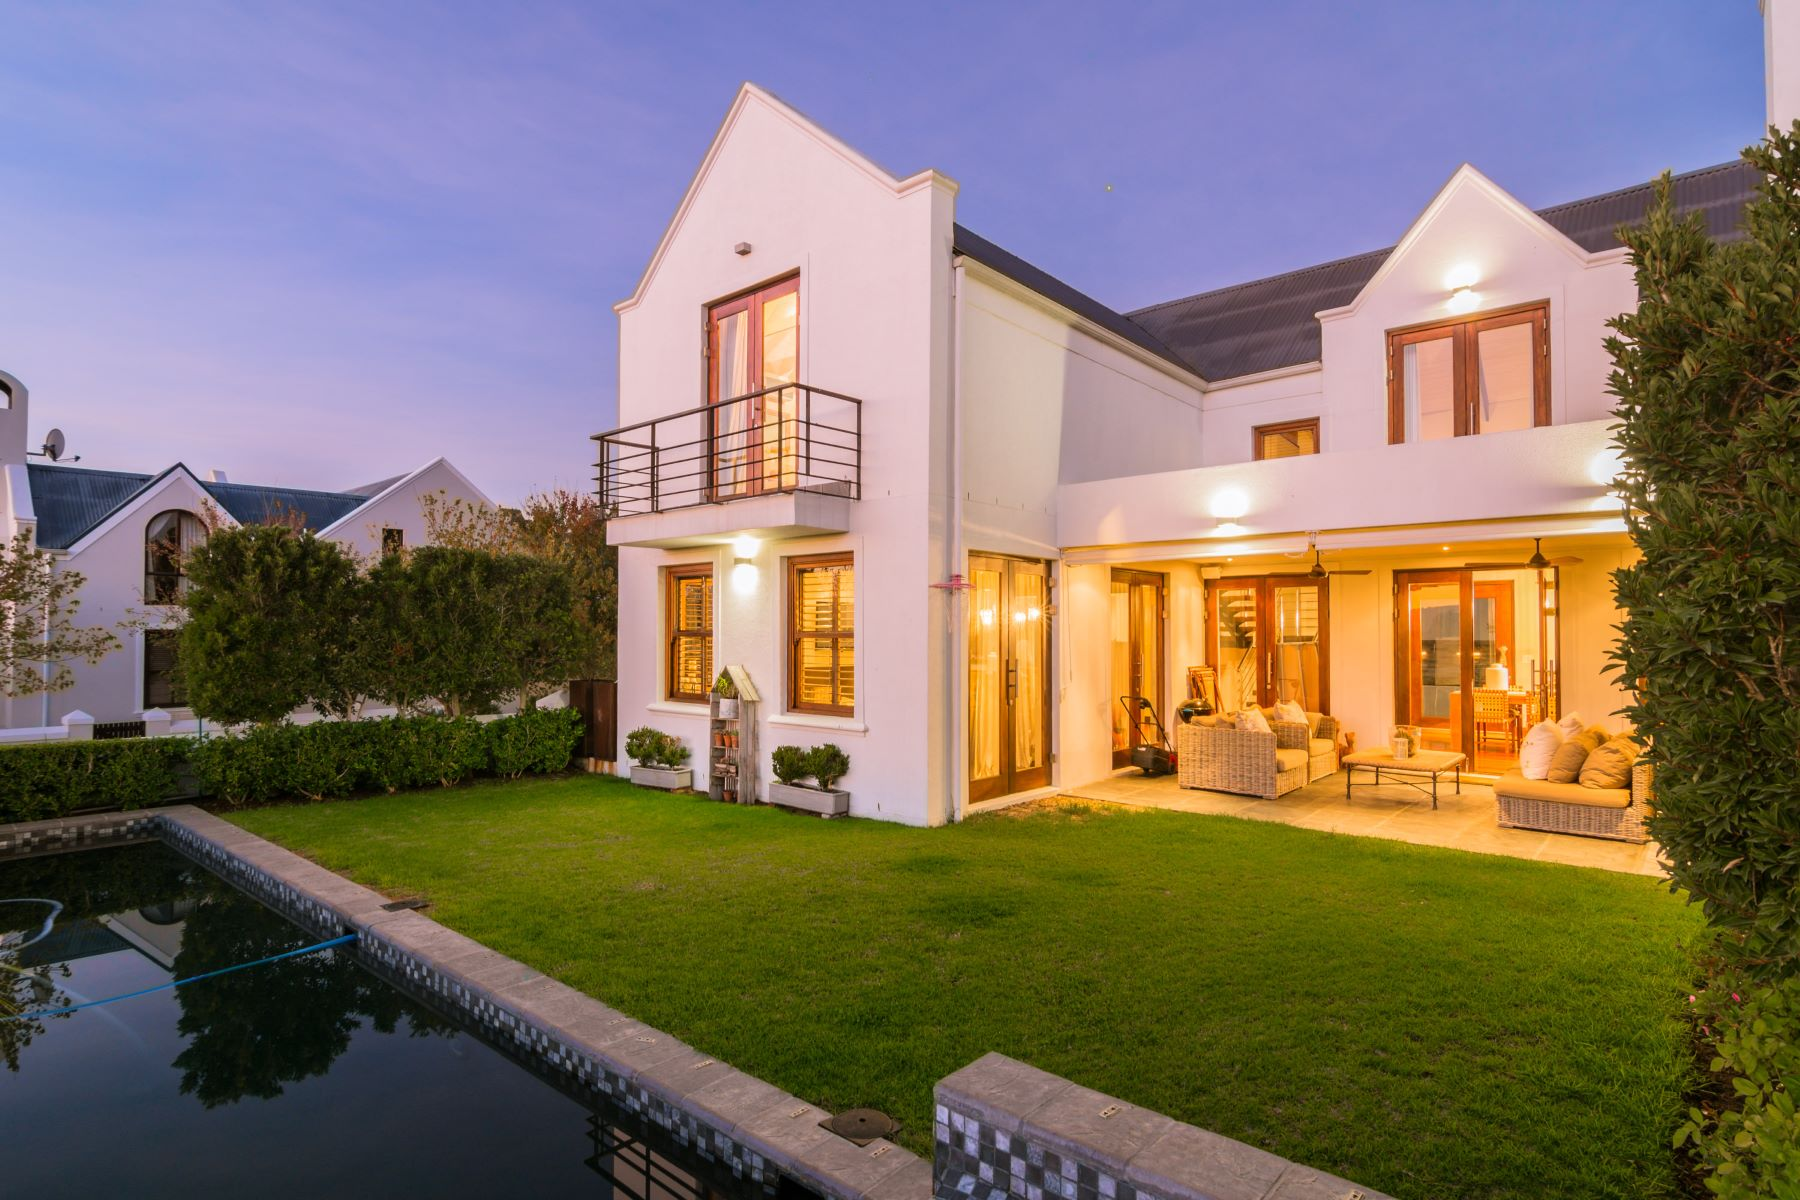 Single Family Home for Sale at De Zalze Winelands Gof Estate Stellenbosch, Western Cape, 7600 South Africa